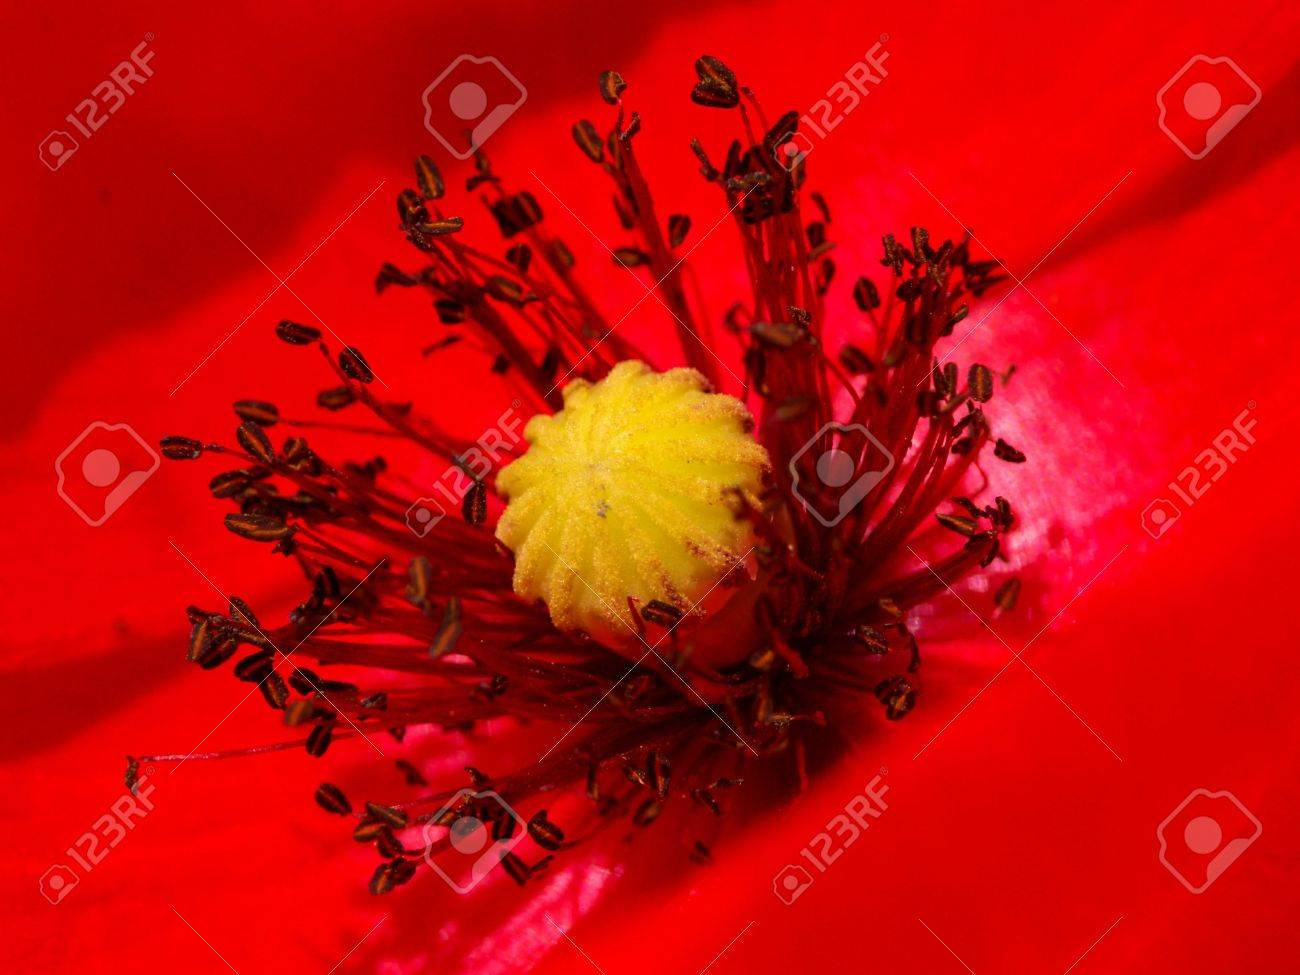 of a poppy flower stamens pistil stock photo picture and